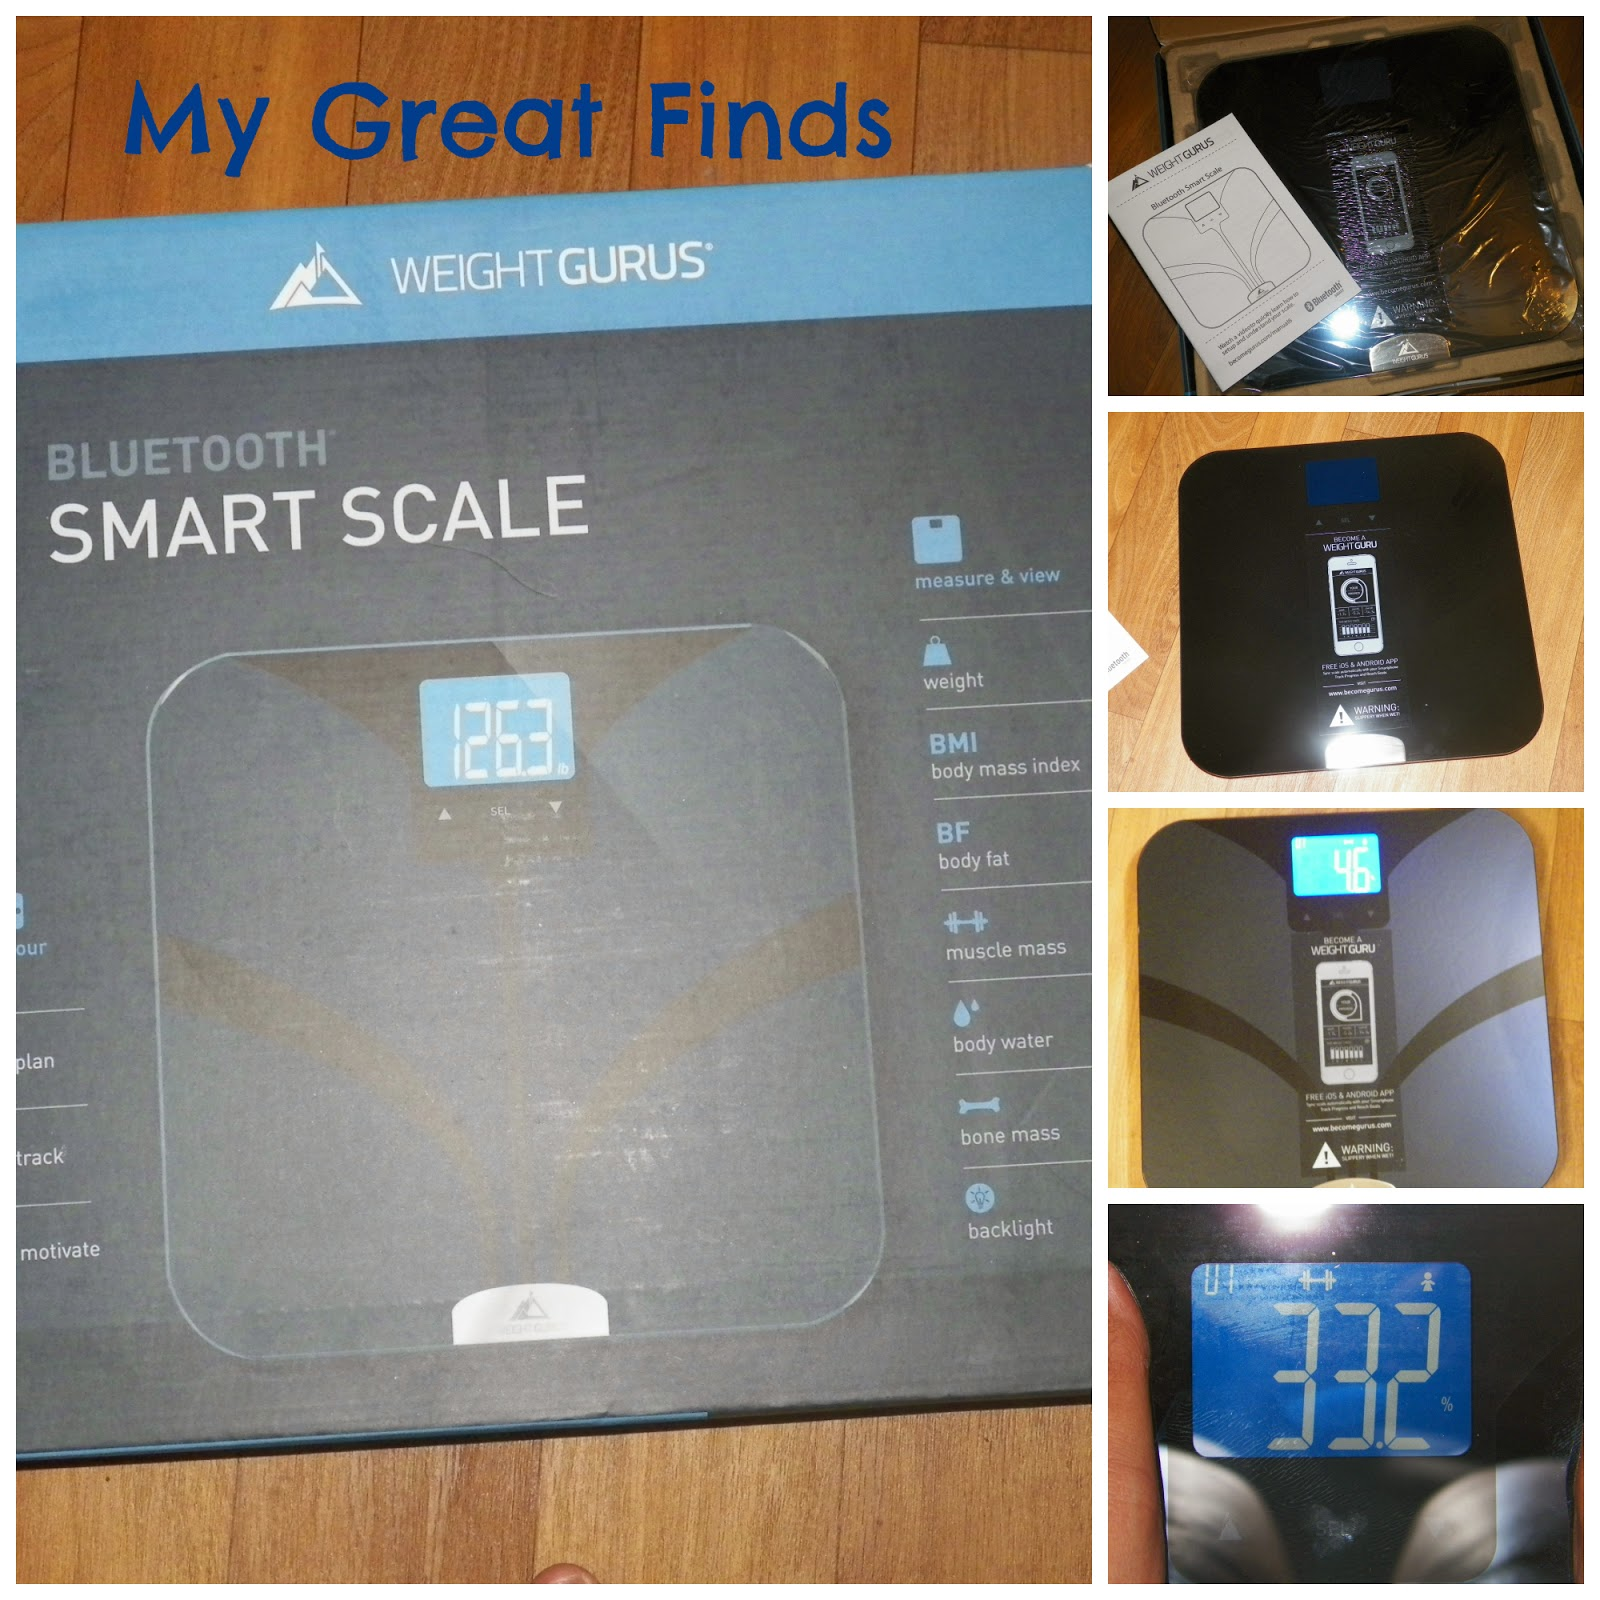 Most Accurate Bathroom Scale 2014: Mygreatfinds: Weight Gurus Bluetooth Smart Connected Body